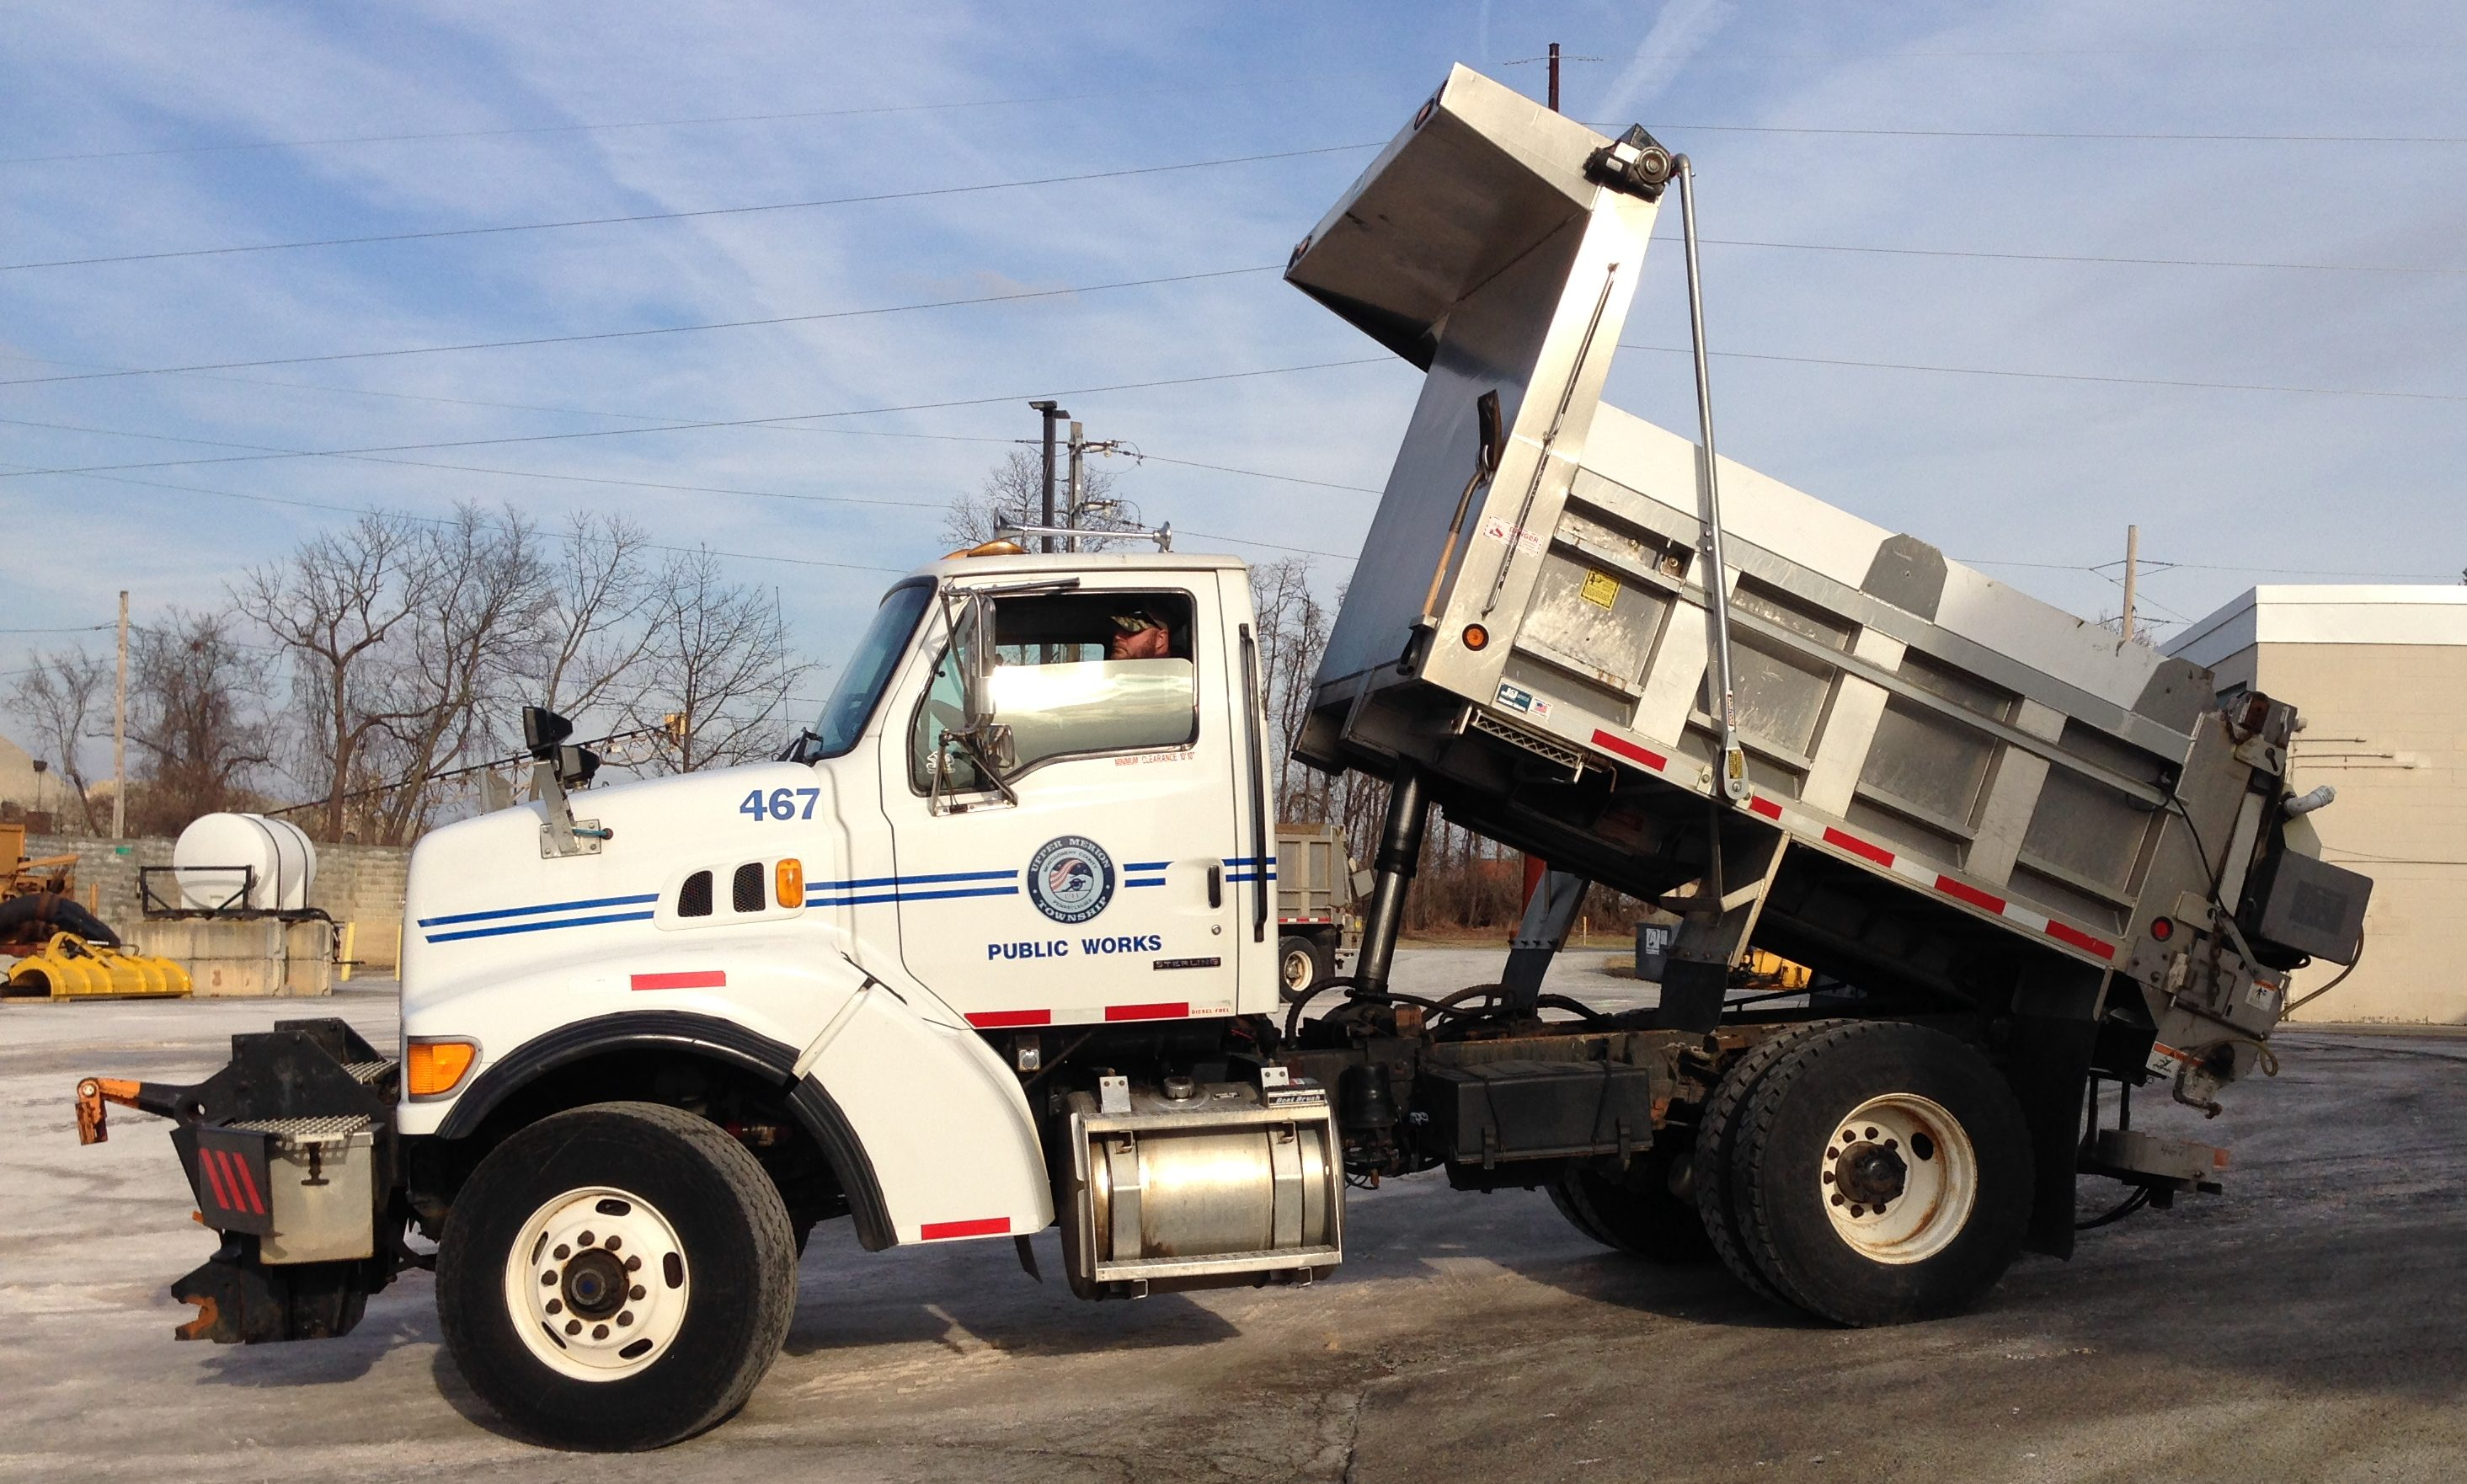 Upper Merion Township´s Public Works Department readies for the snow on January 16, 2018. The township is one of 94 municipalities PennDOT pays to plow state roads.